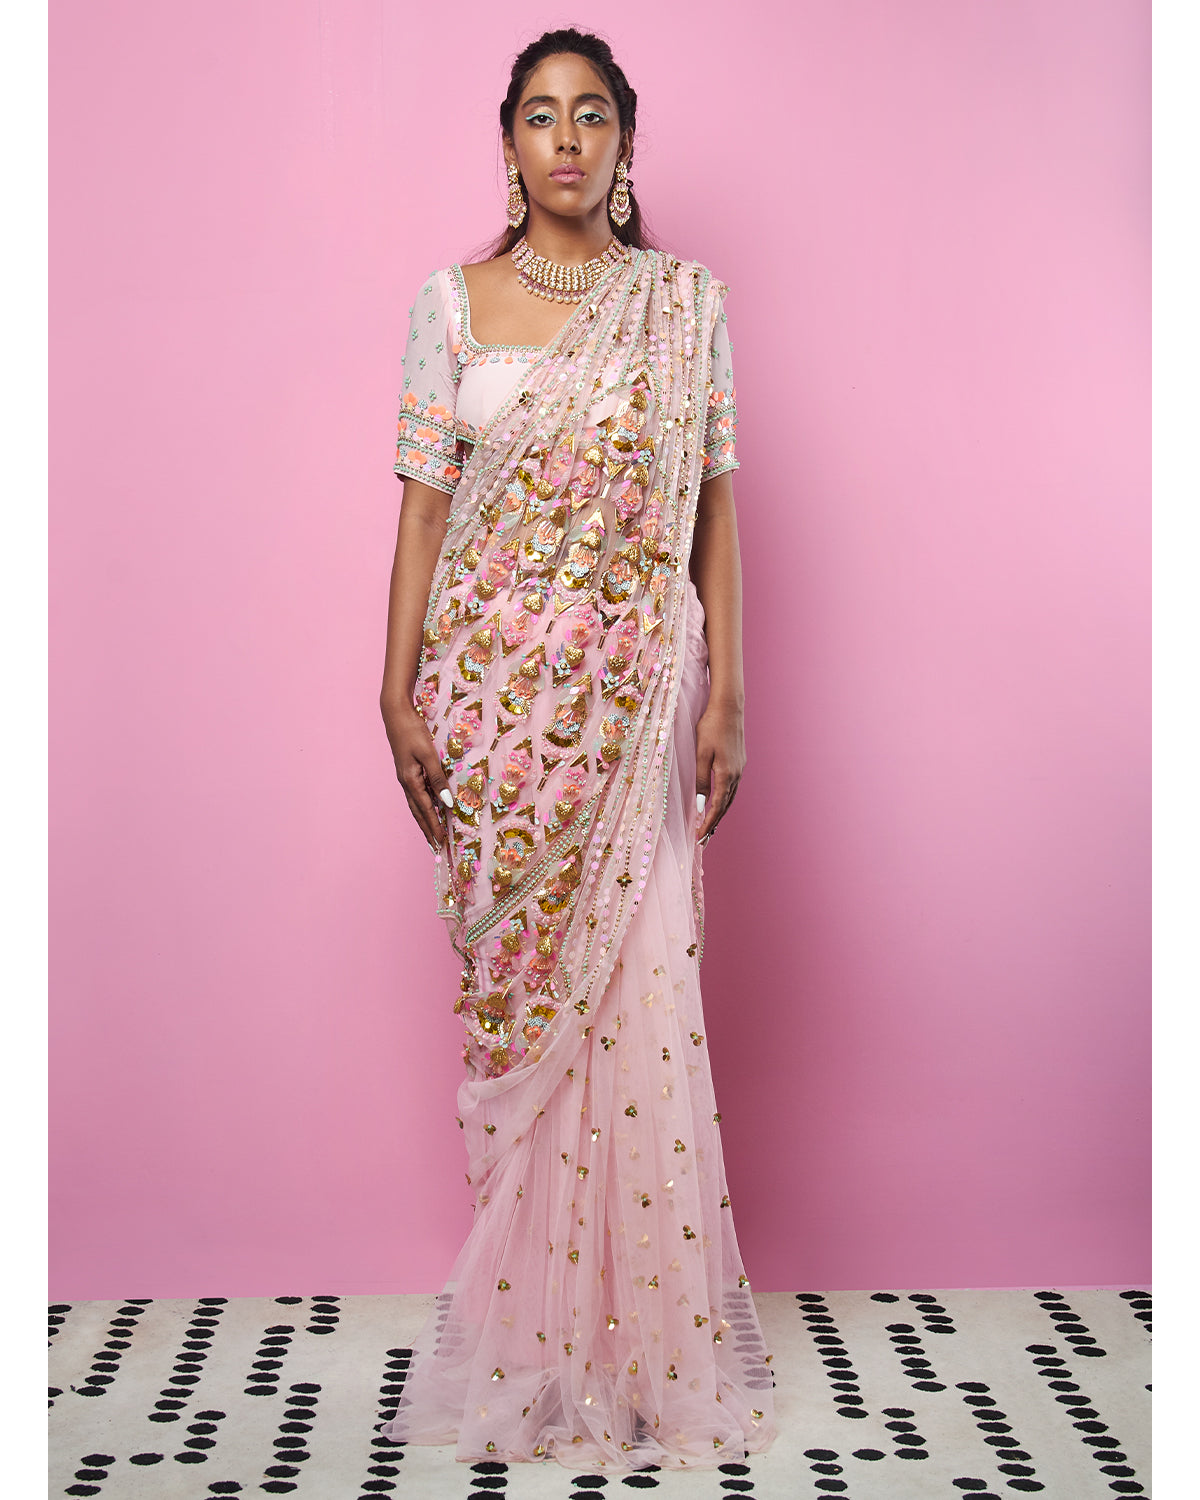 Blush Pink Pre-stitched Sari | Papa Don't Preach